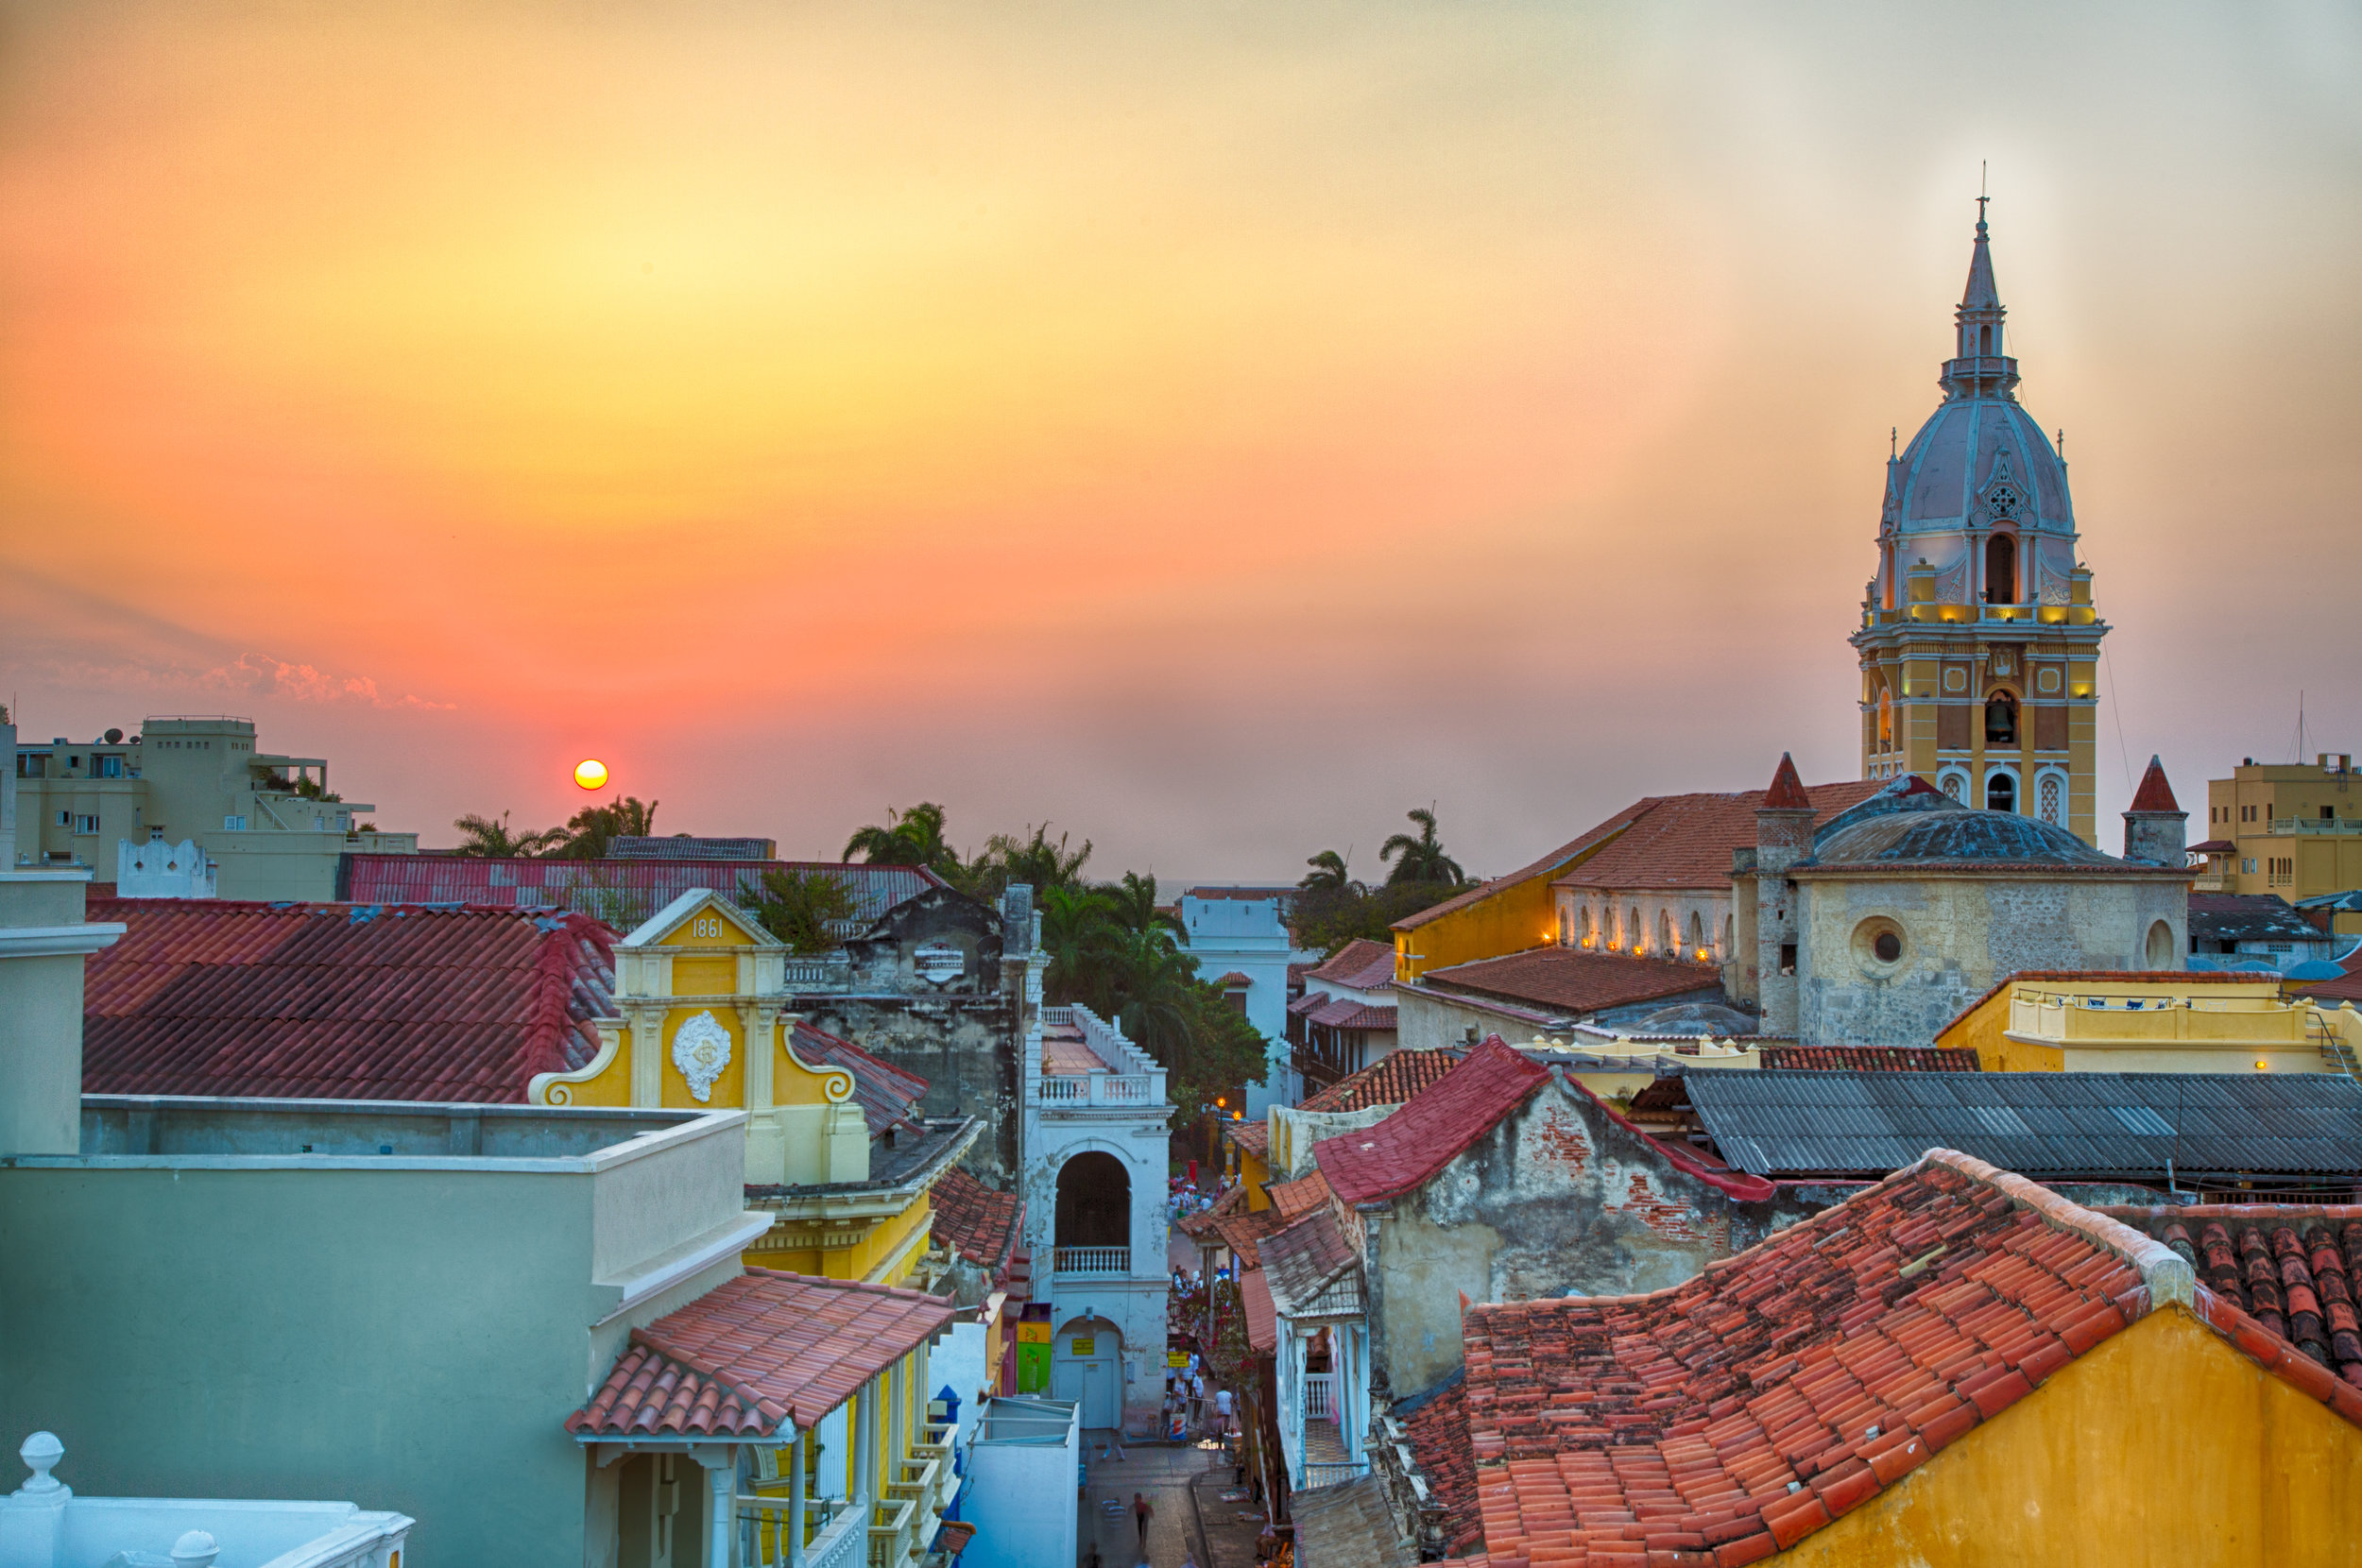 Sunset-over-Cartagena-472552712_5578x3704.jpeg